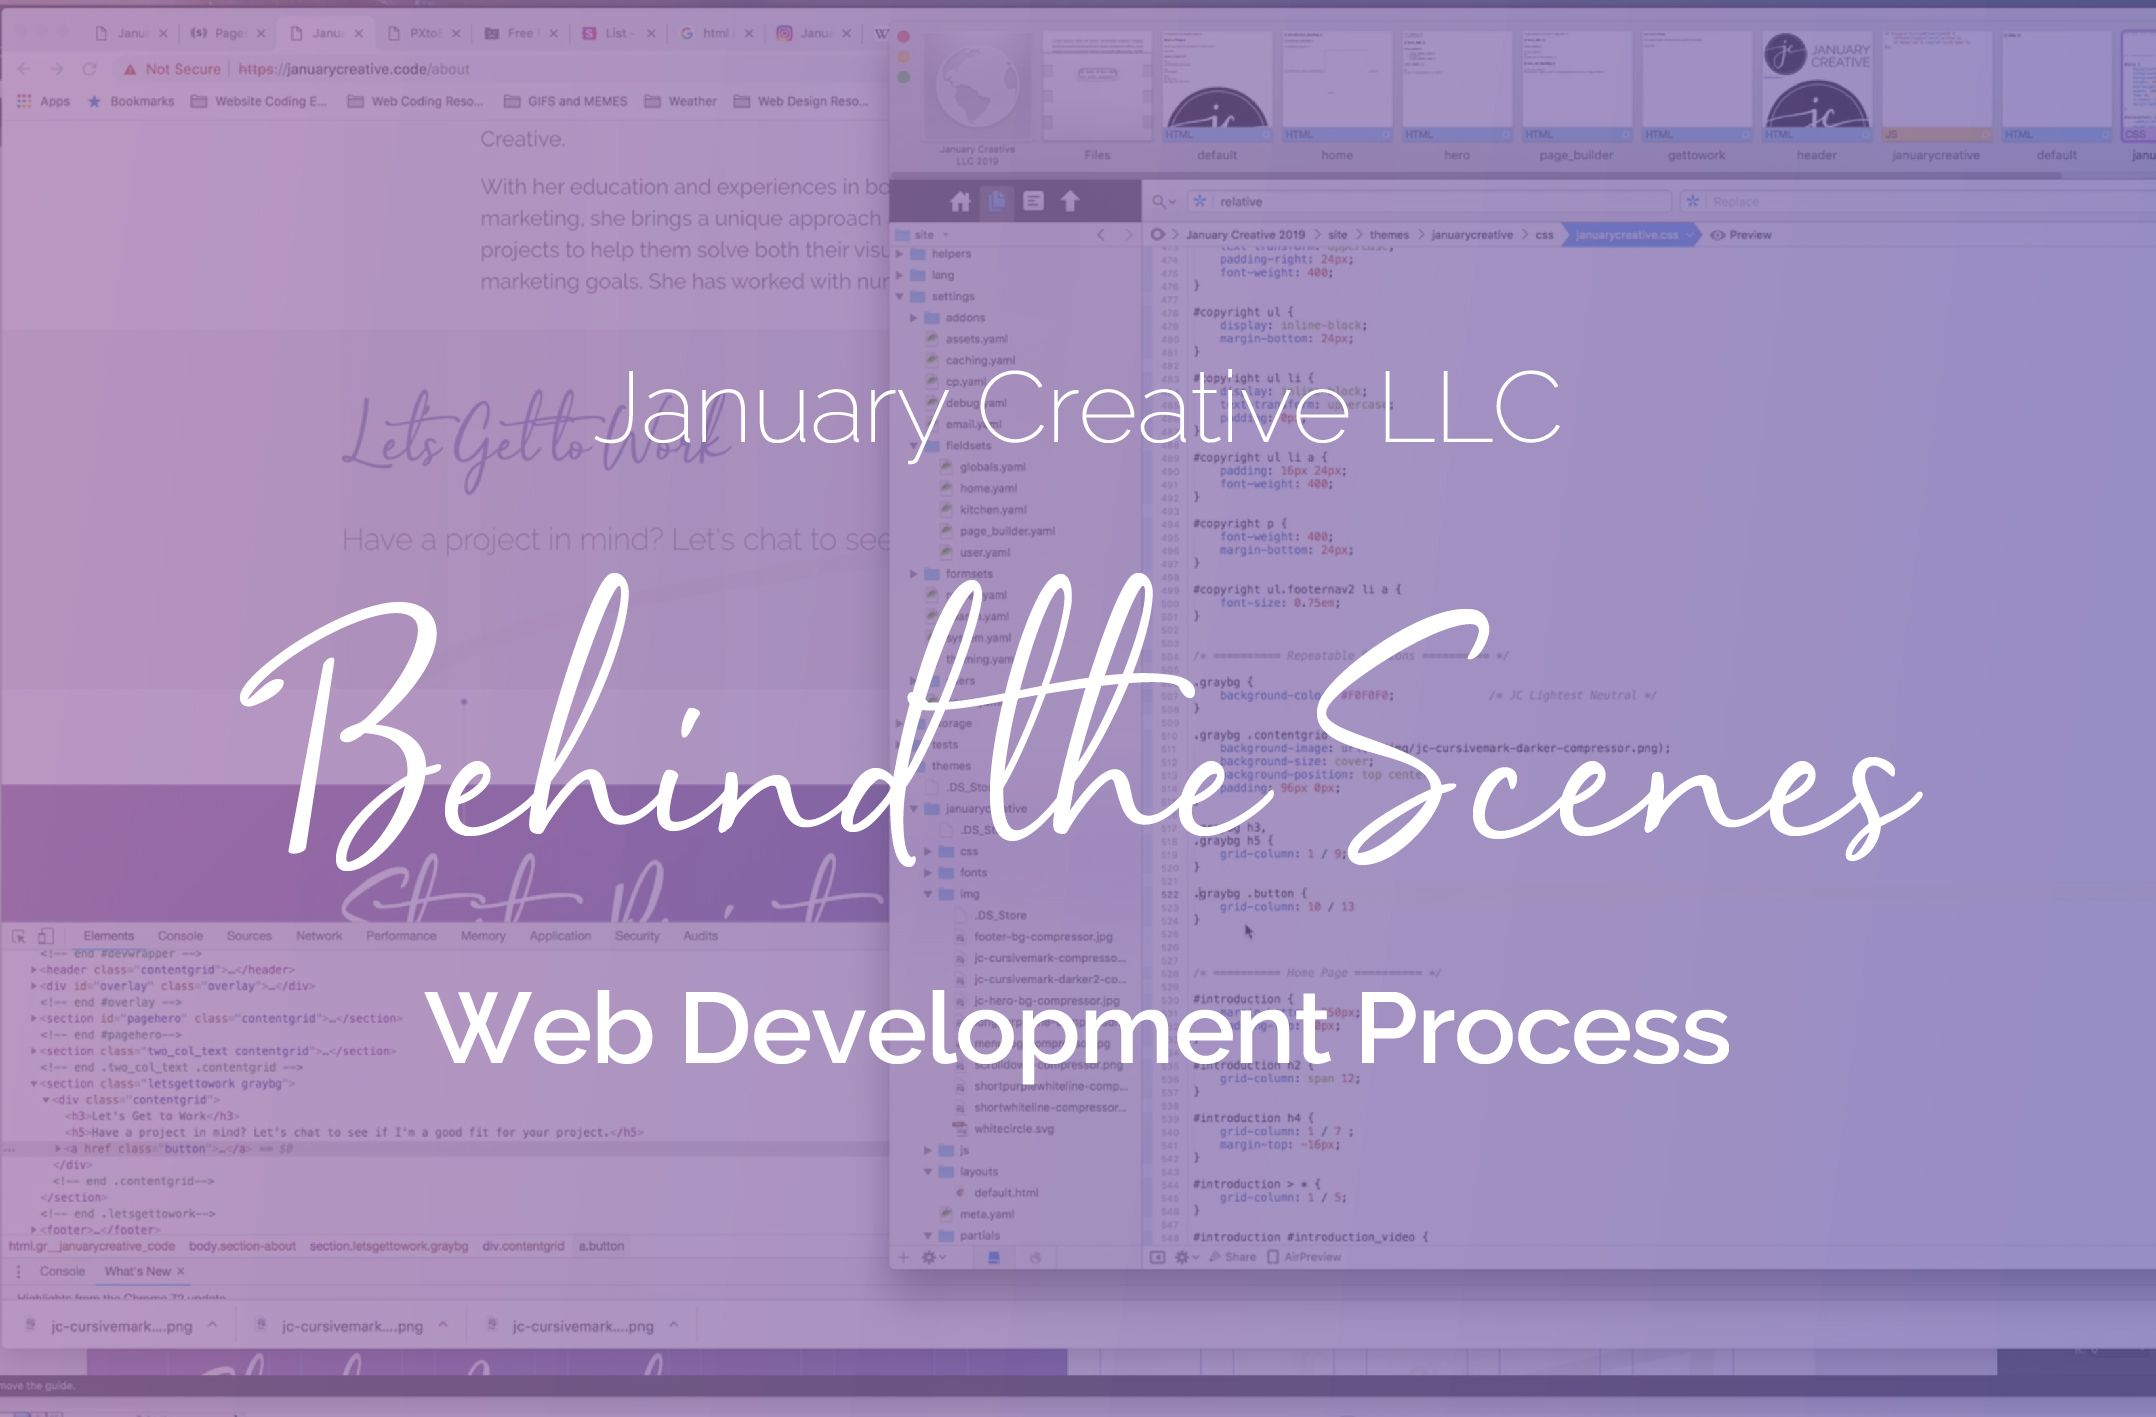 Behind the scenes of the web development process for January